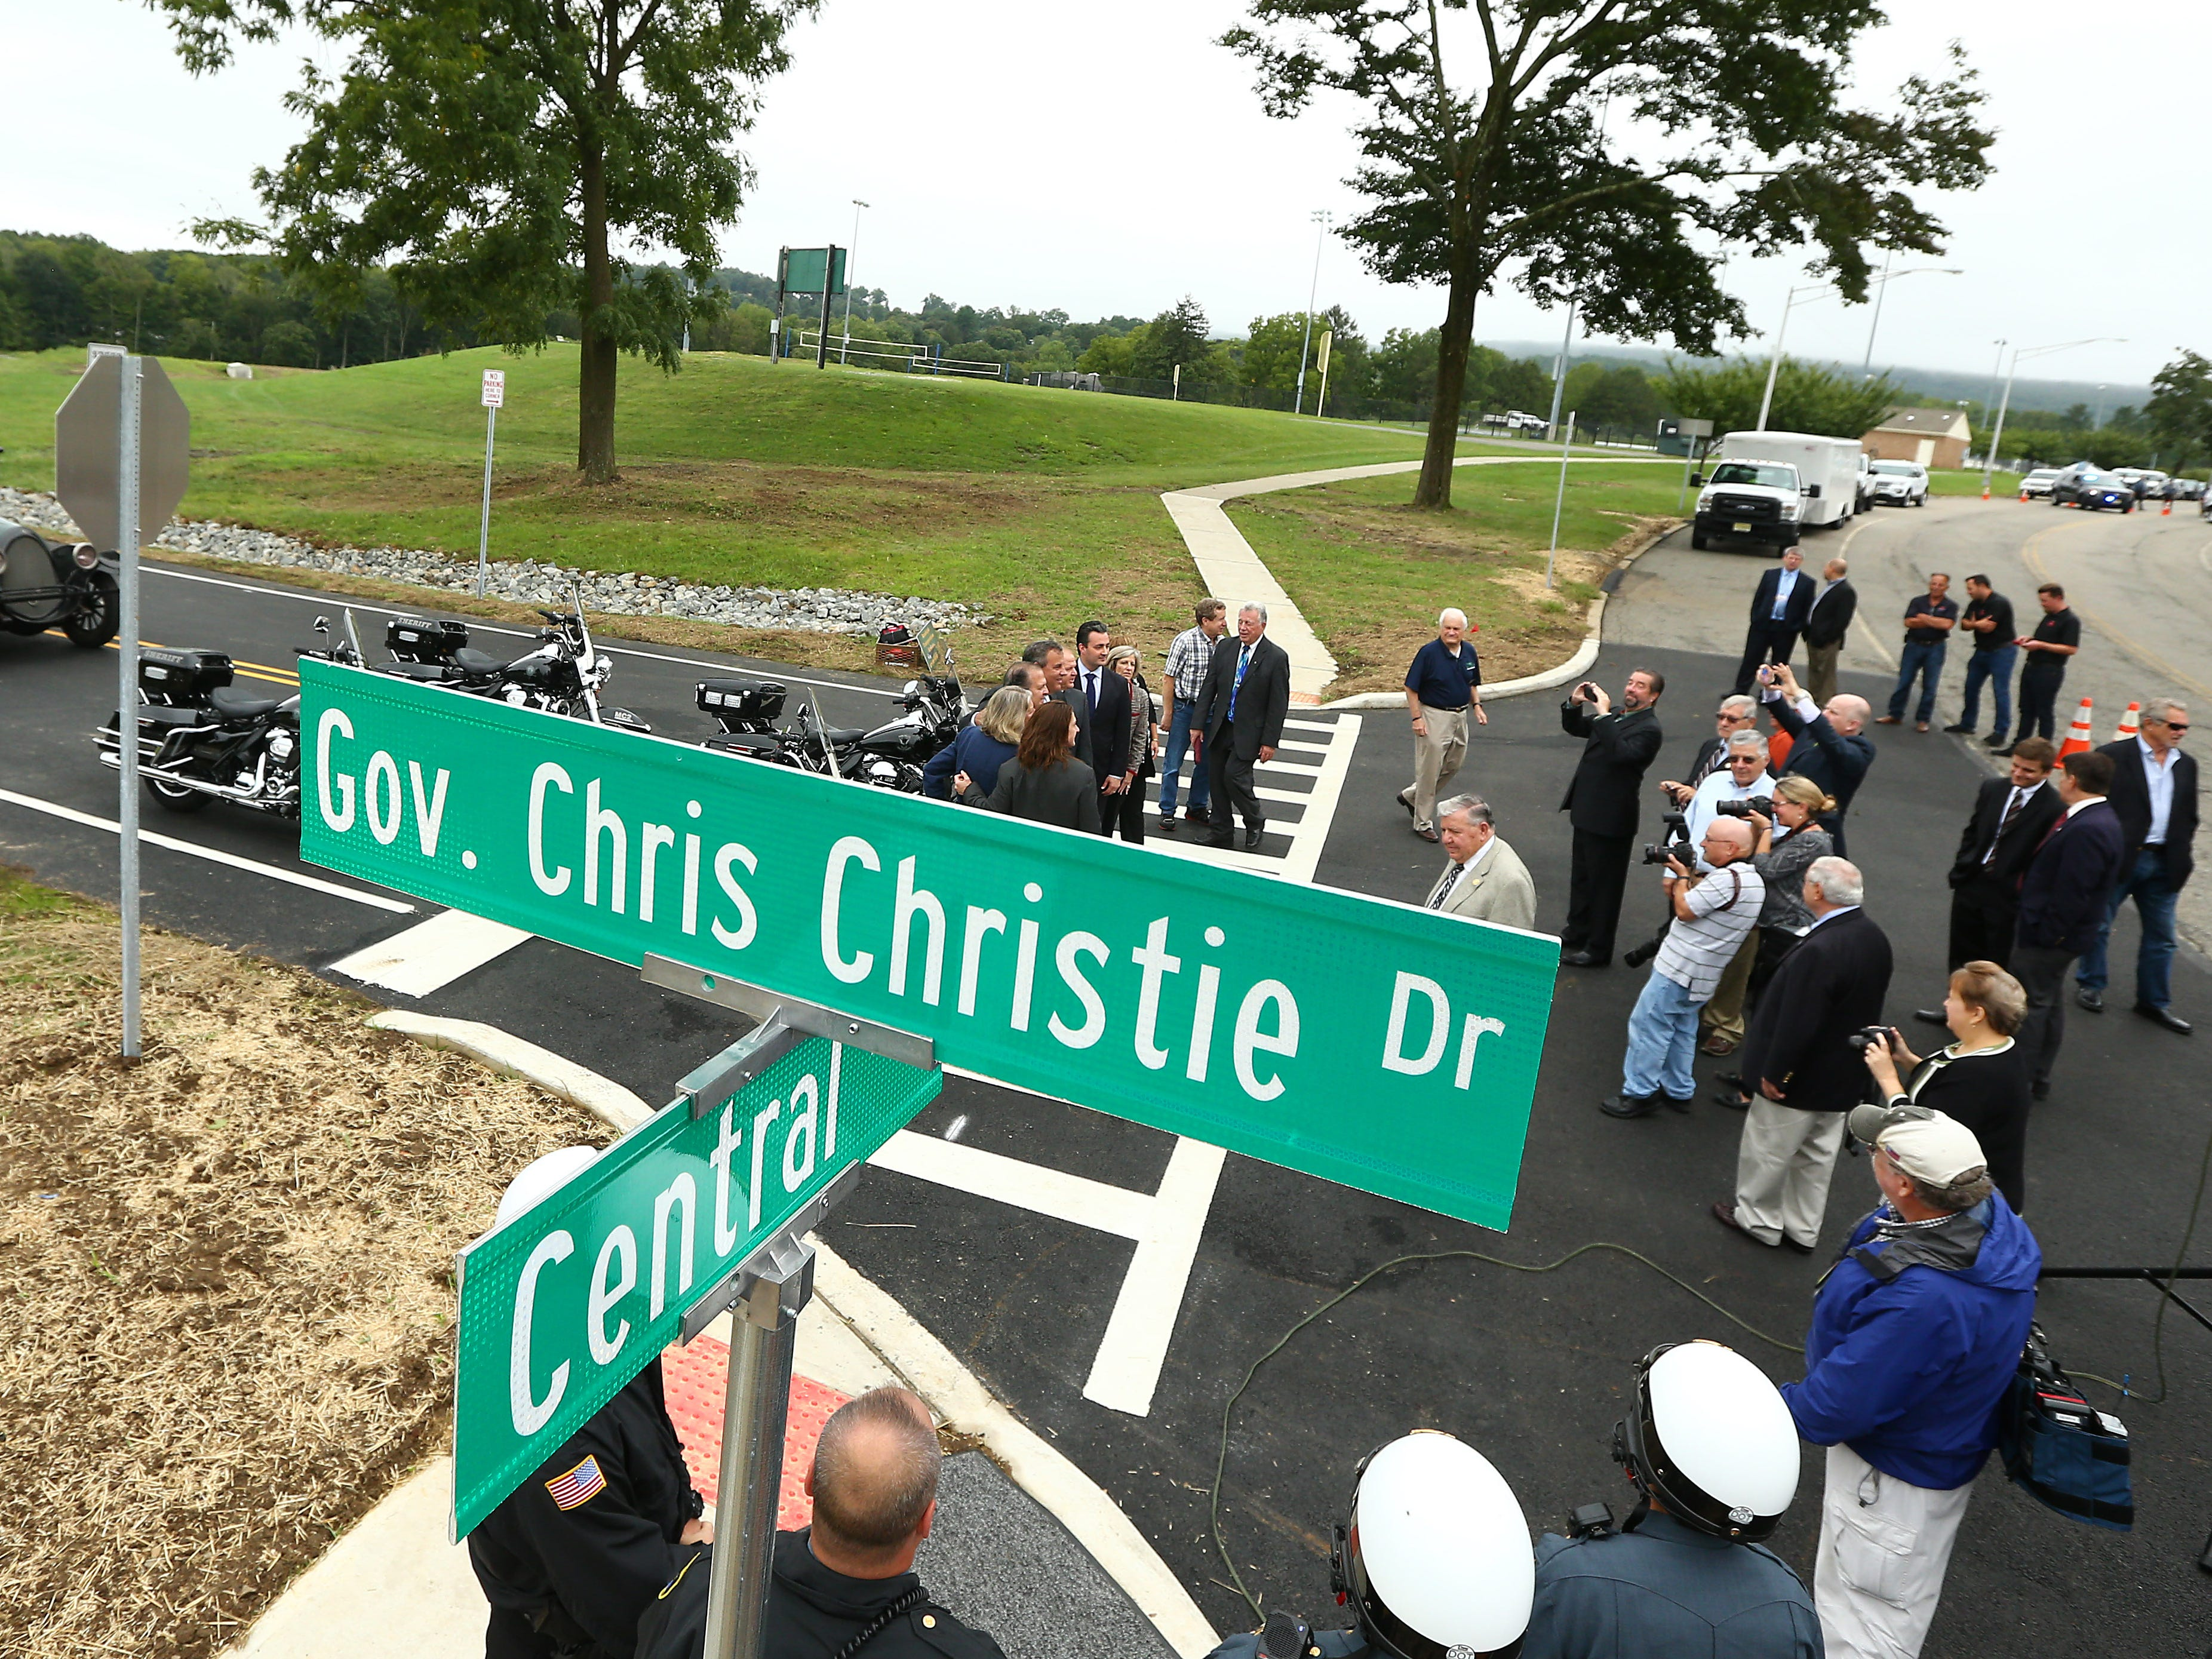 Morris County freeholders formally open Gov. Chris Christie Drive, a new main access road to Central Park of Morris County. September 12, 2018, Morris Plains, NJ